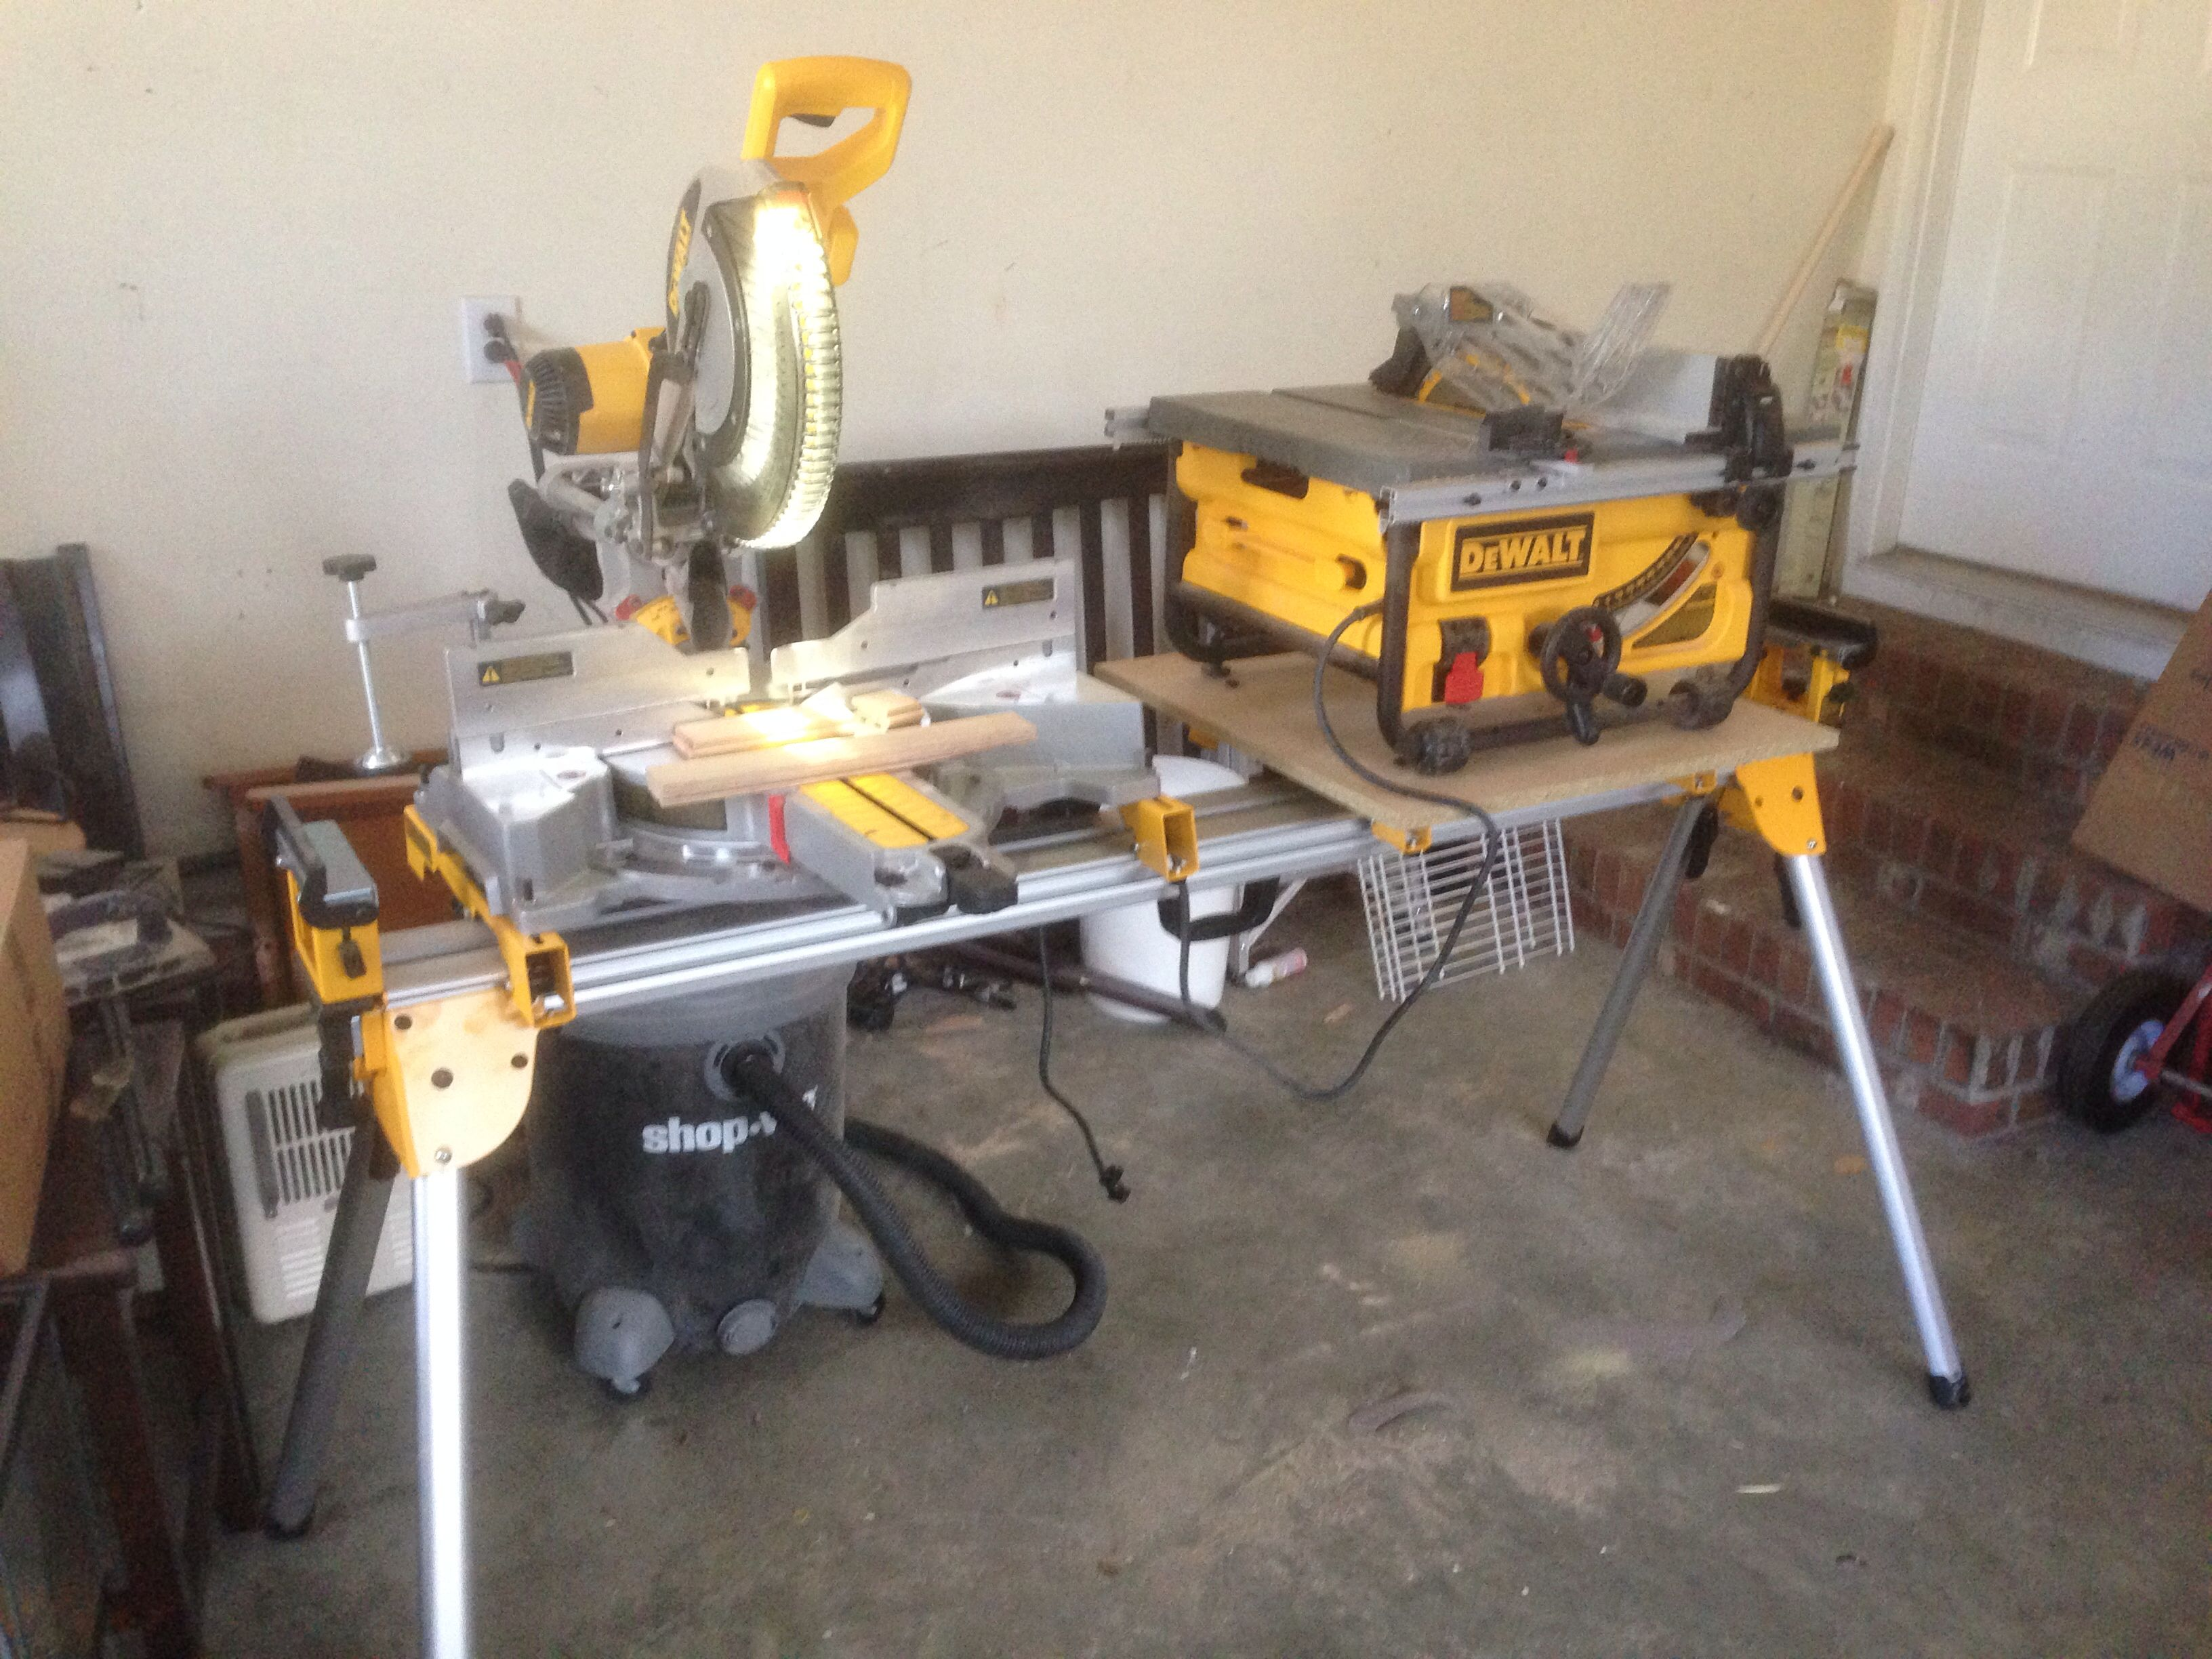 Astonishing How To Get Dewalt Miter Saw And Table Saw On Same Stand Ibusinesslaw Wood Chair Design Ideas Ibusinesslaworg